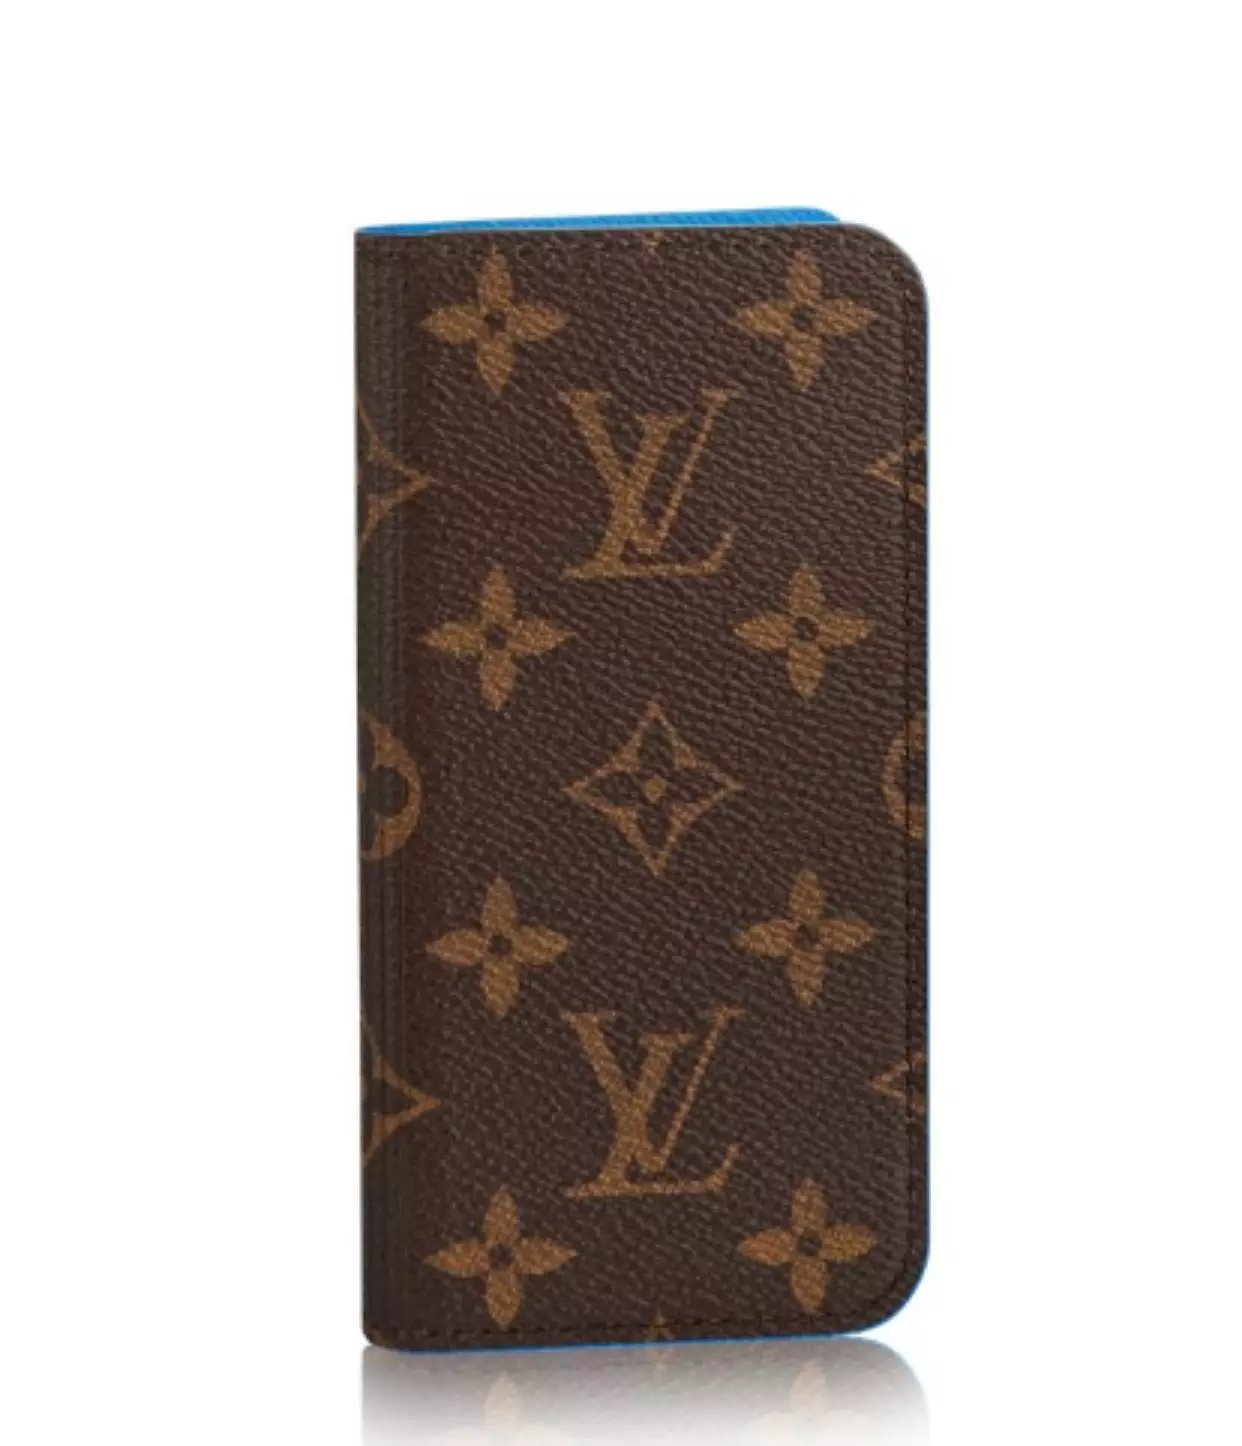 iphone cases for 8 Plus iphone cases 8 Plus Louis Vuitton iphone 8 Plus case i phone 8 Plus cover rechargeable phone case 8 Plus 6 different iPhone 8 Plus cases iphone case creator mophine juice pack